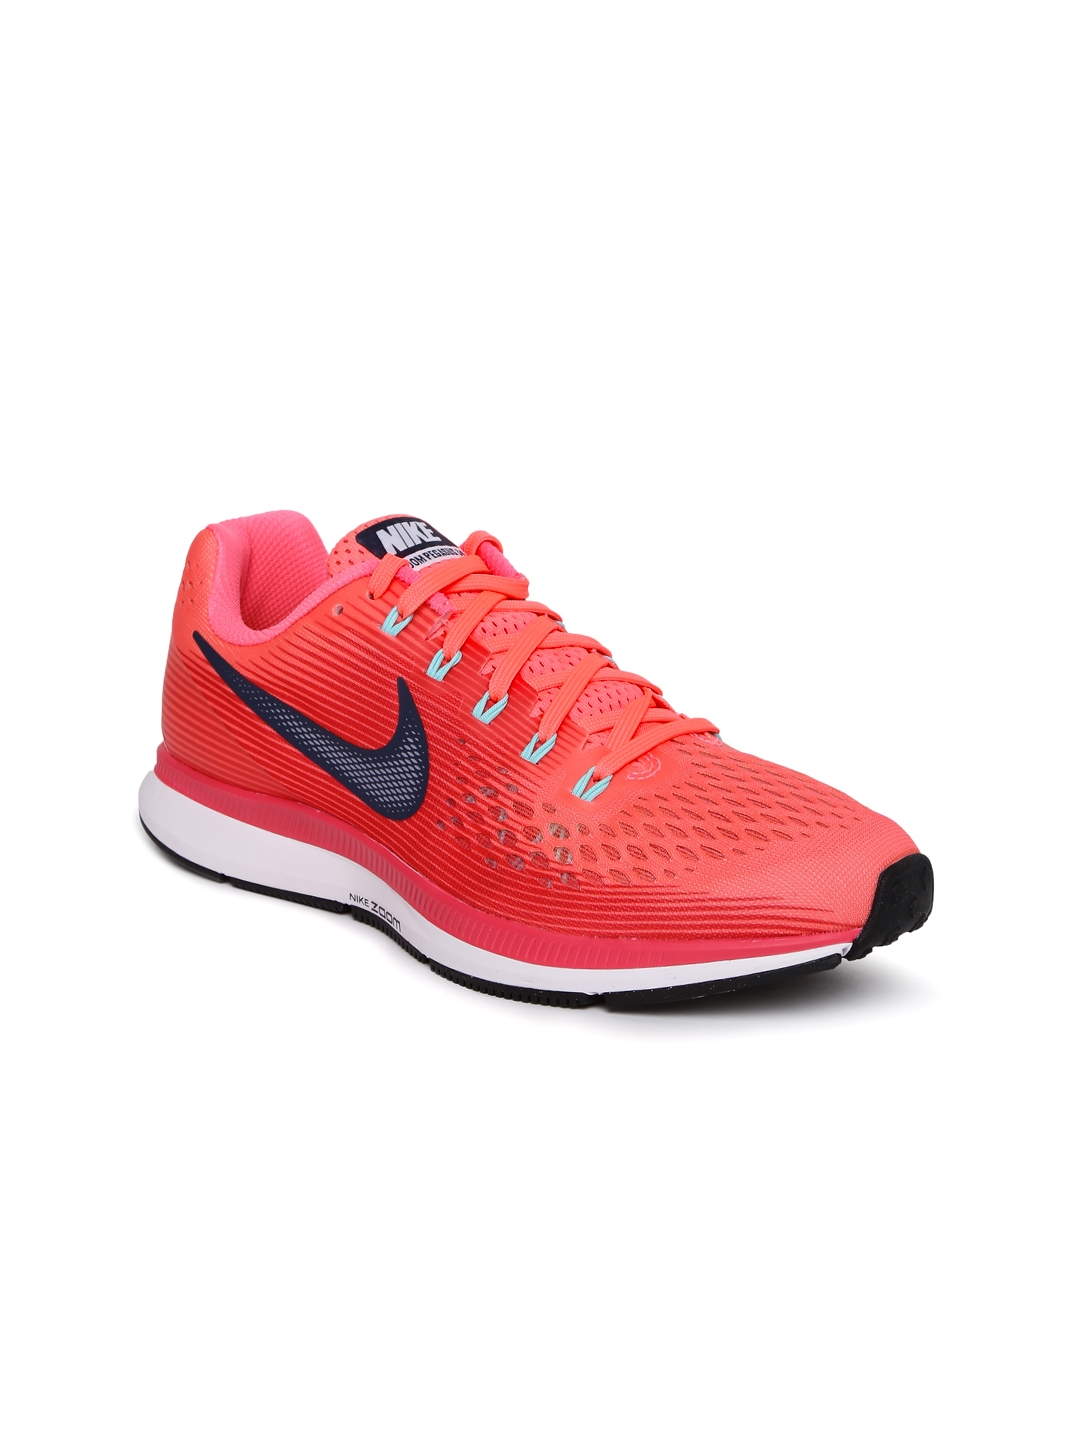 1b2526a3ef73 Buy Nike Women Pink AIR ZOOM PEGASUS 34 Running Shoes - Sports Shoes ...